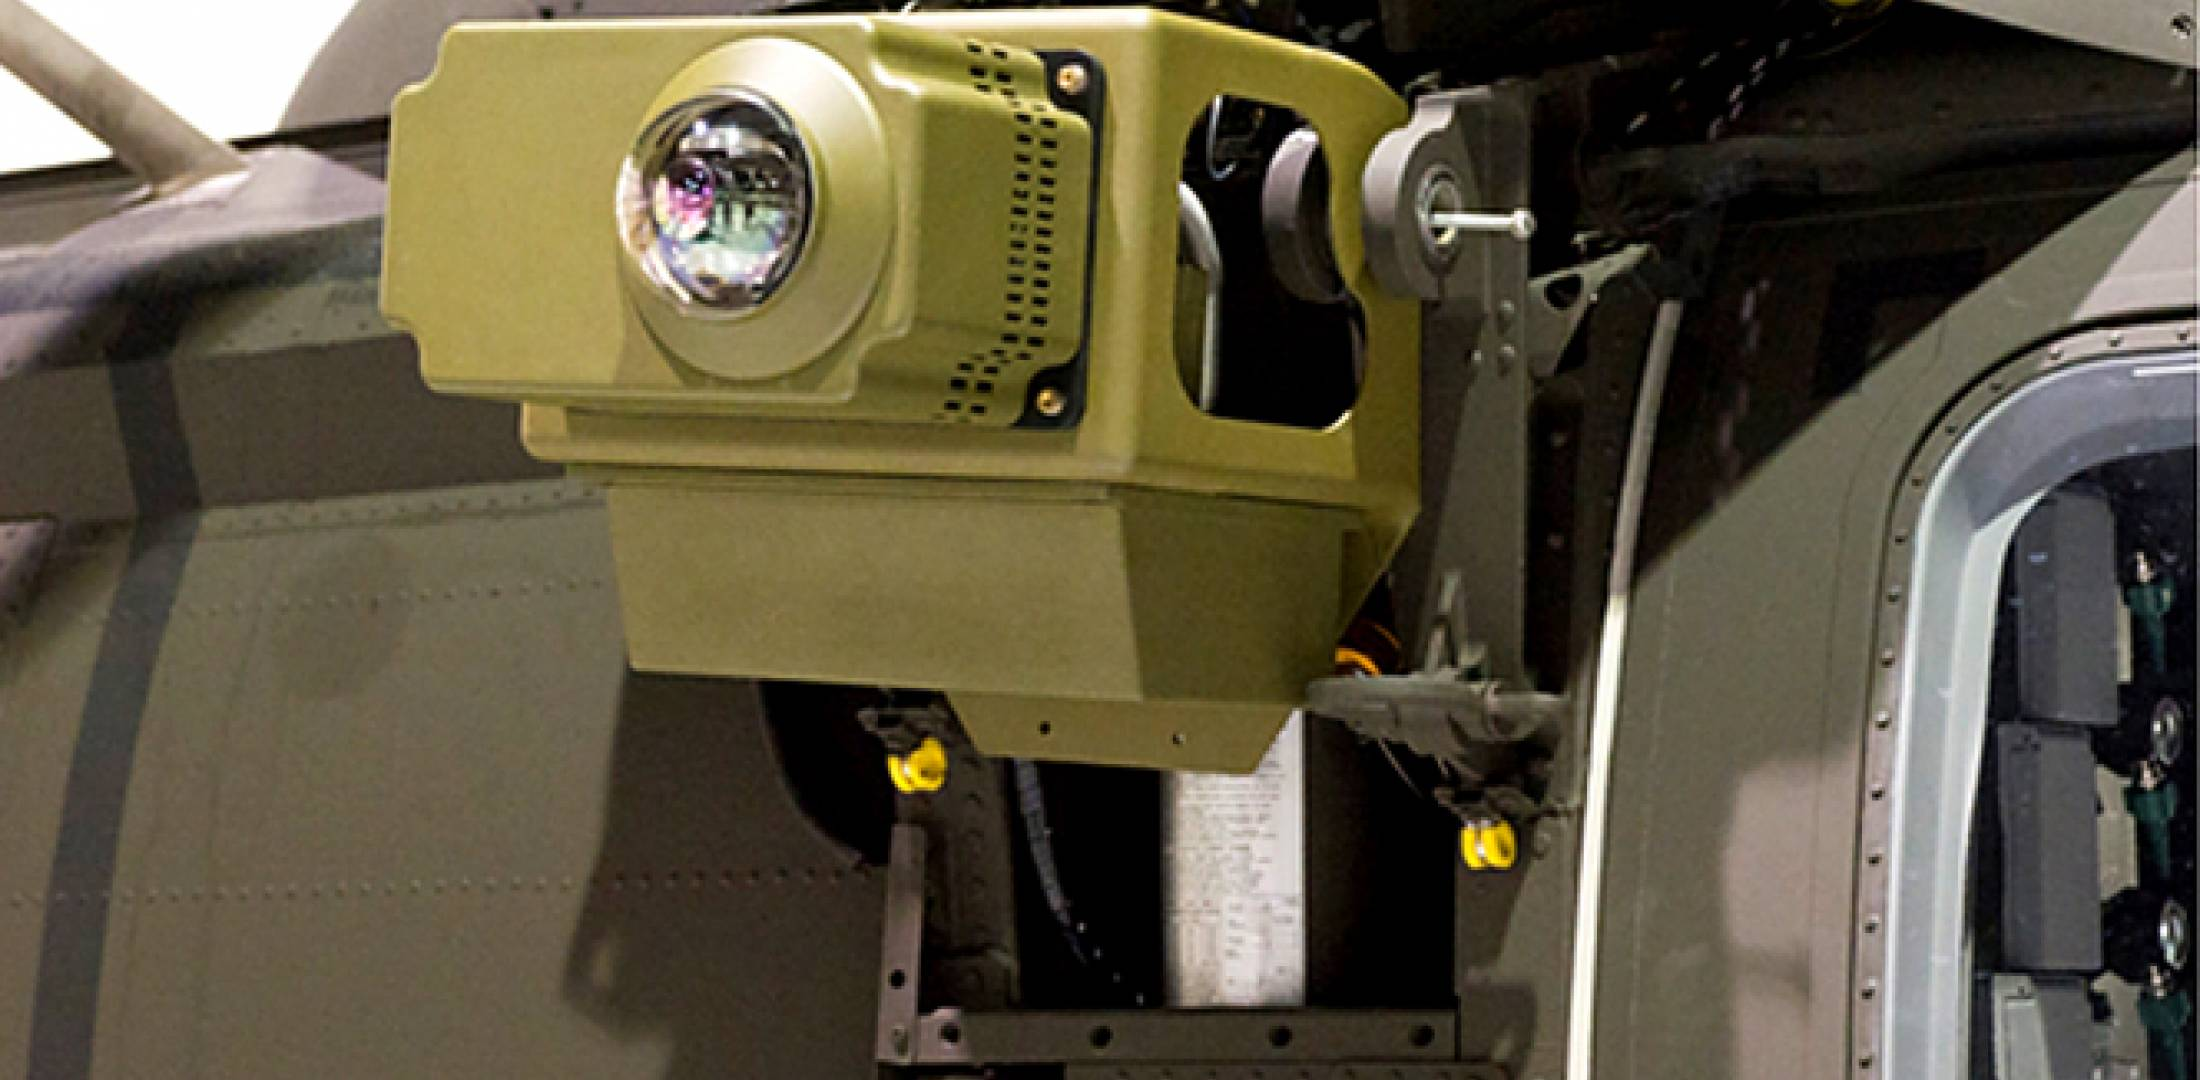 Raytheon system developed for the U.S. Army's Common Infrared Countermeasures...